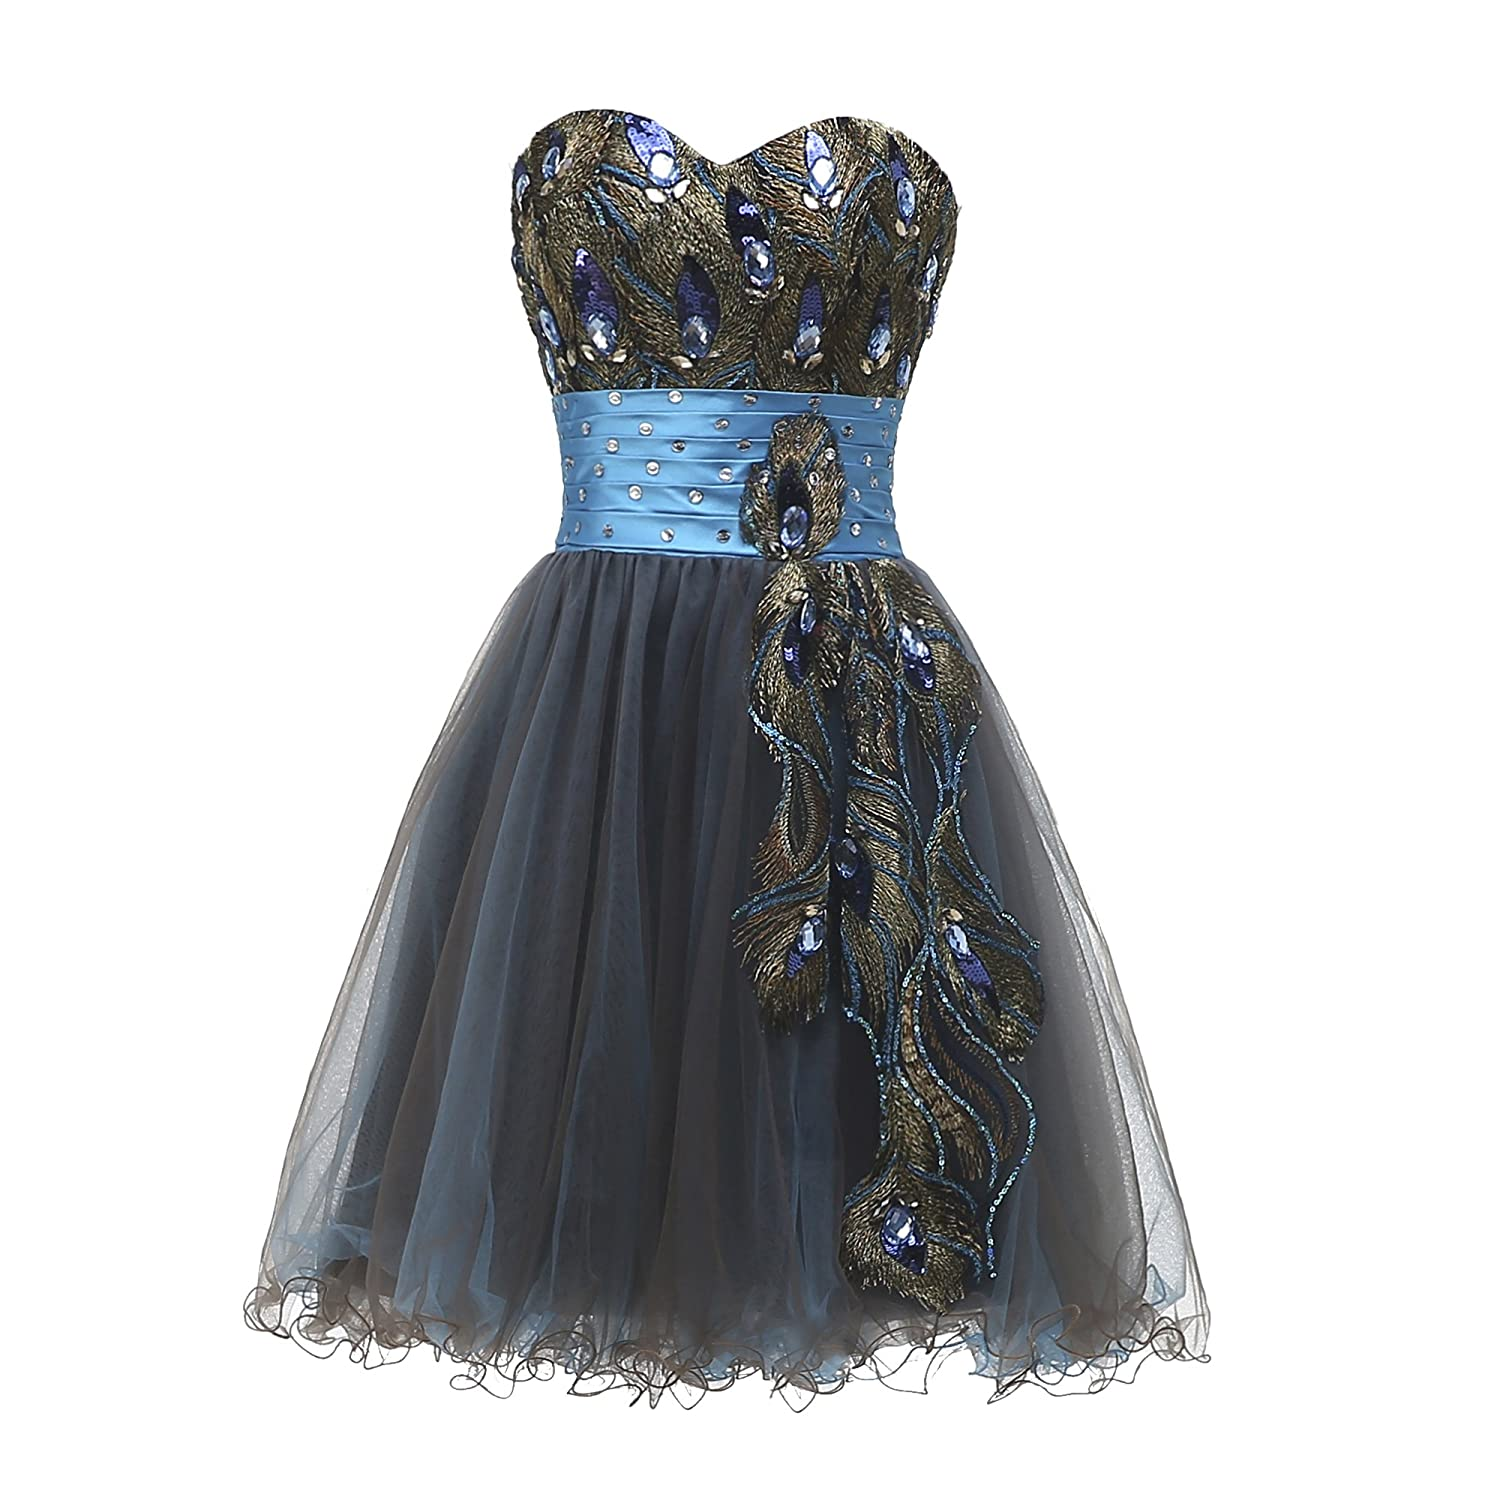 Everlastinglove Peacock Applique Short Homecoming Dresses Tulle Cocktail Dress